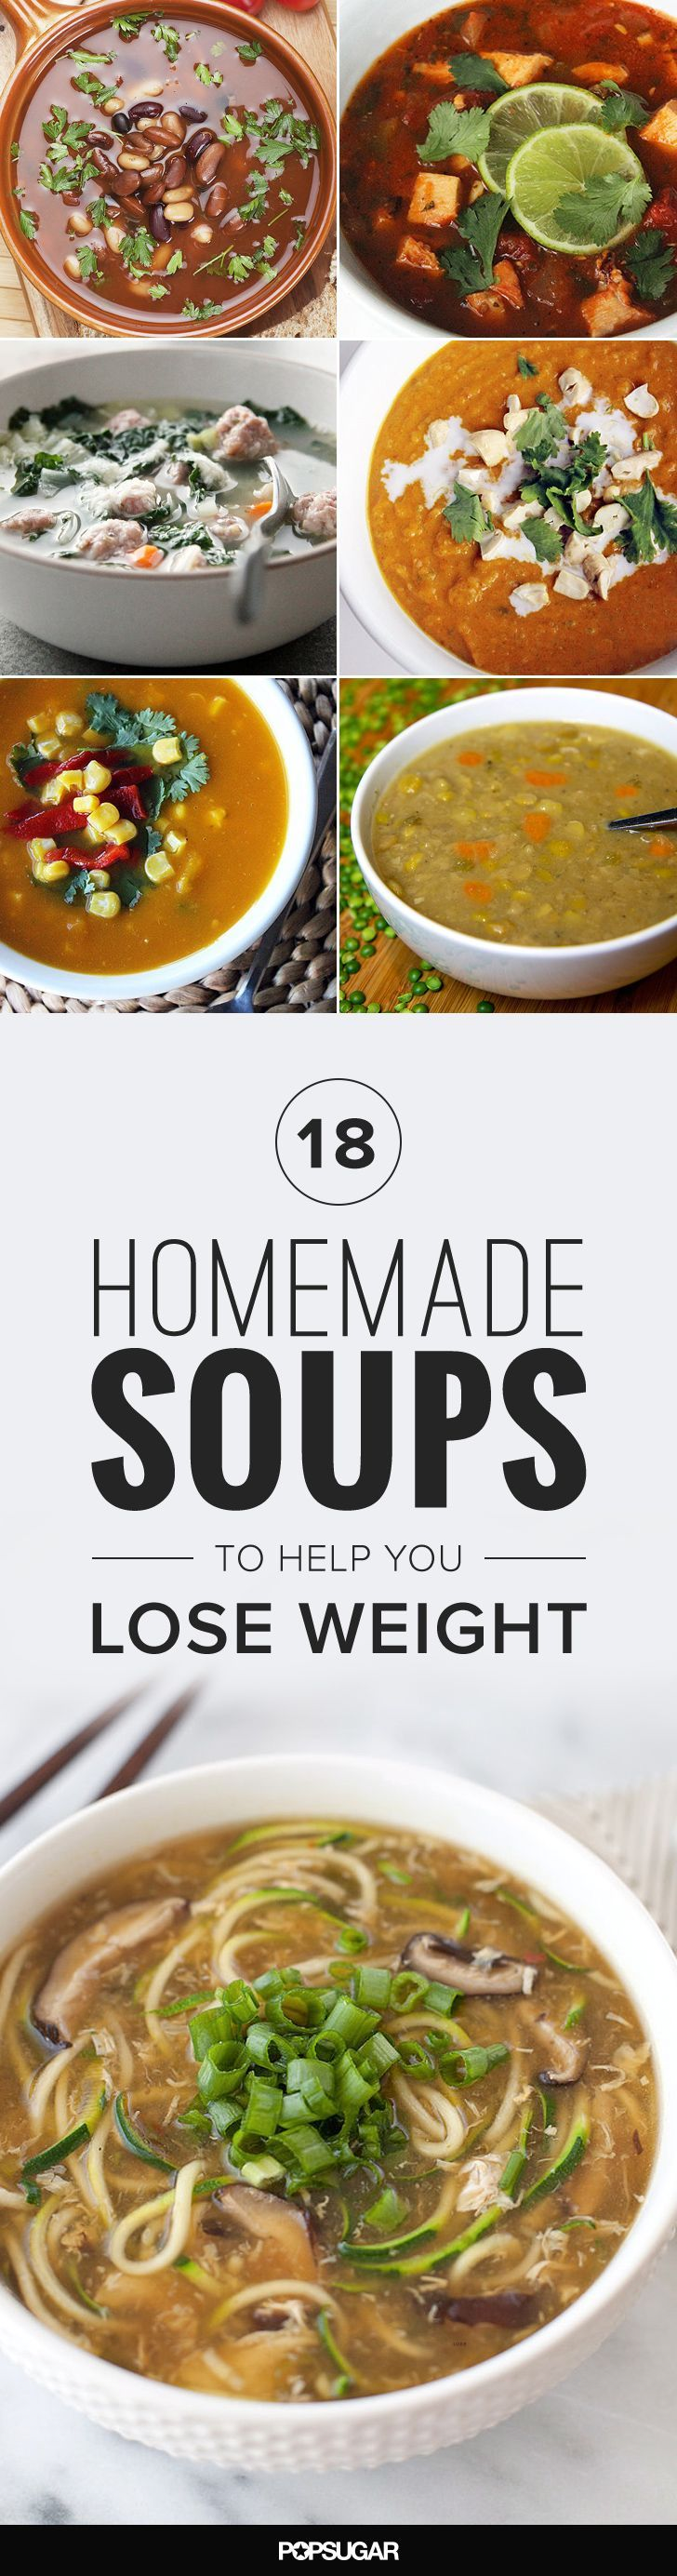 Homemade Soups To Help You Lose Weight | Beauty & Fitness Ideas